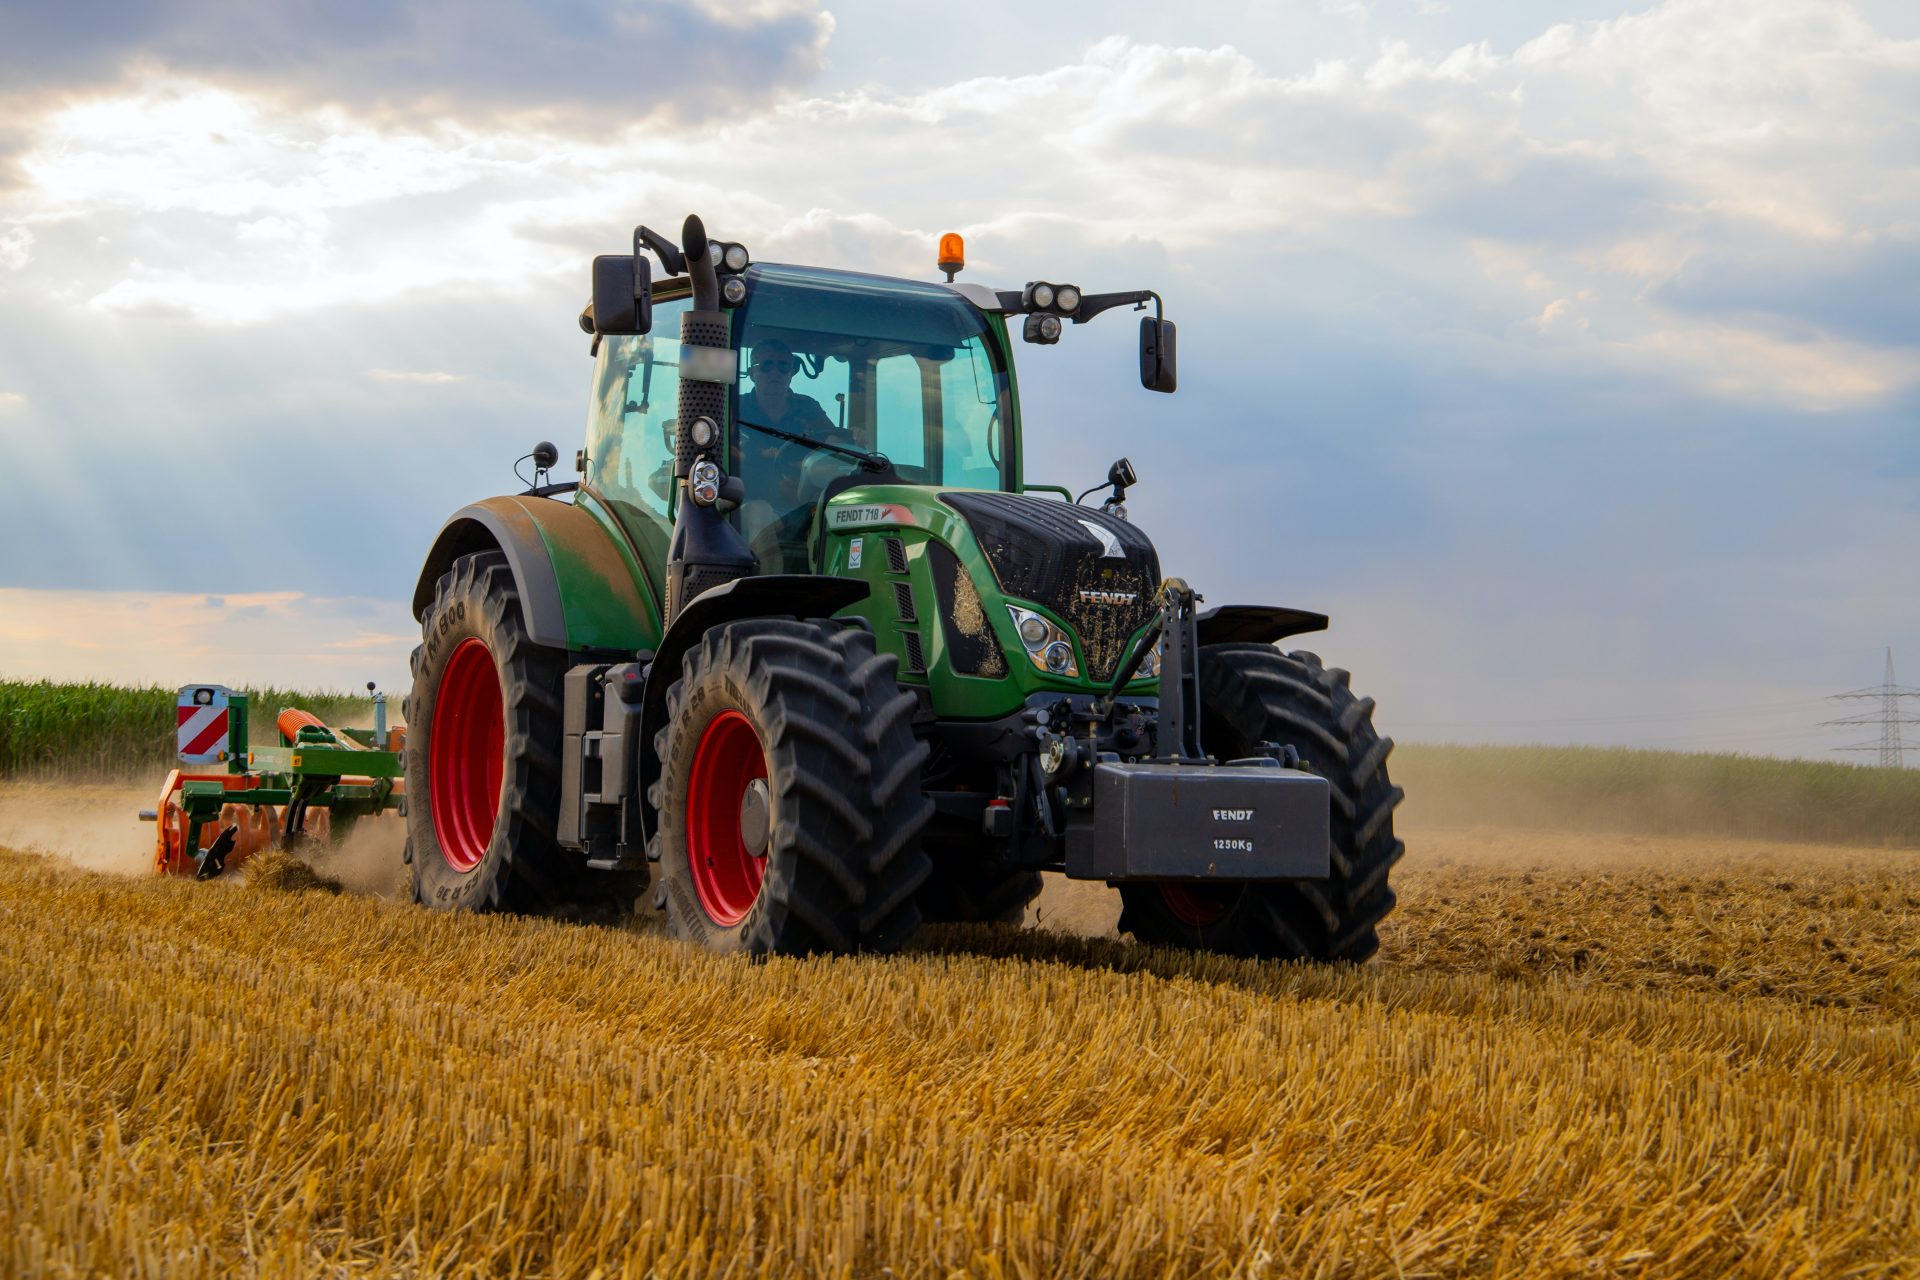 Giant agricultural tractor